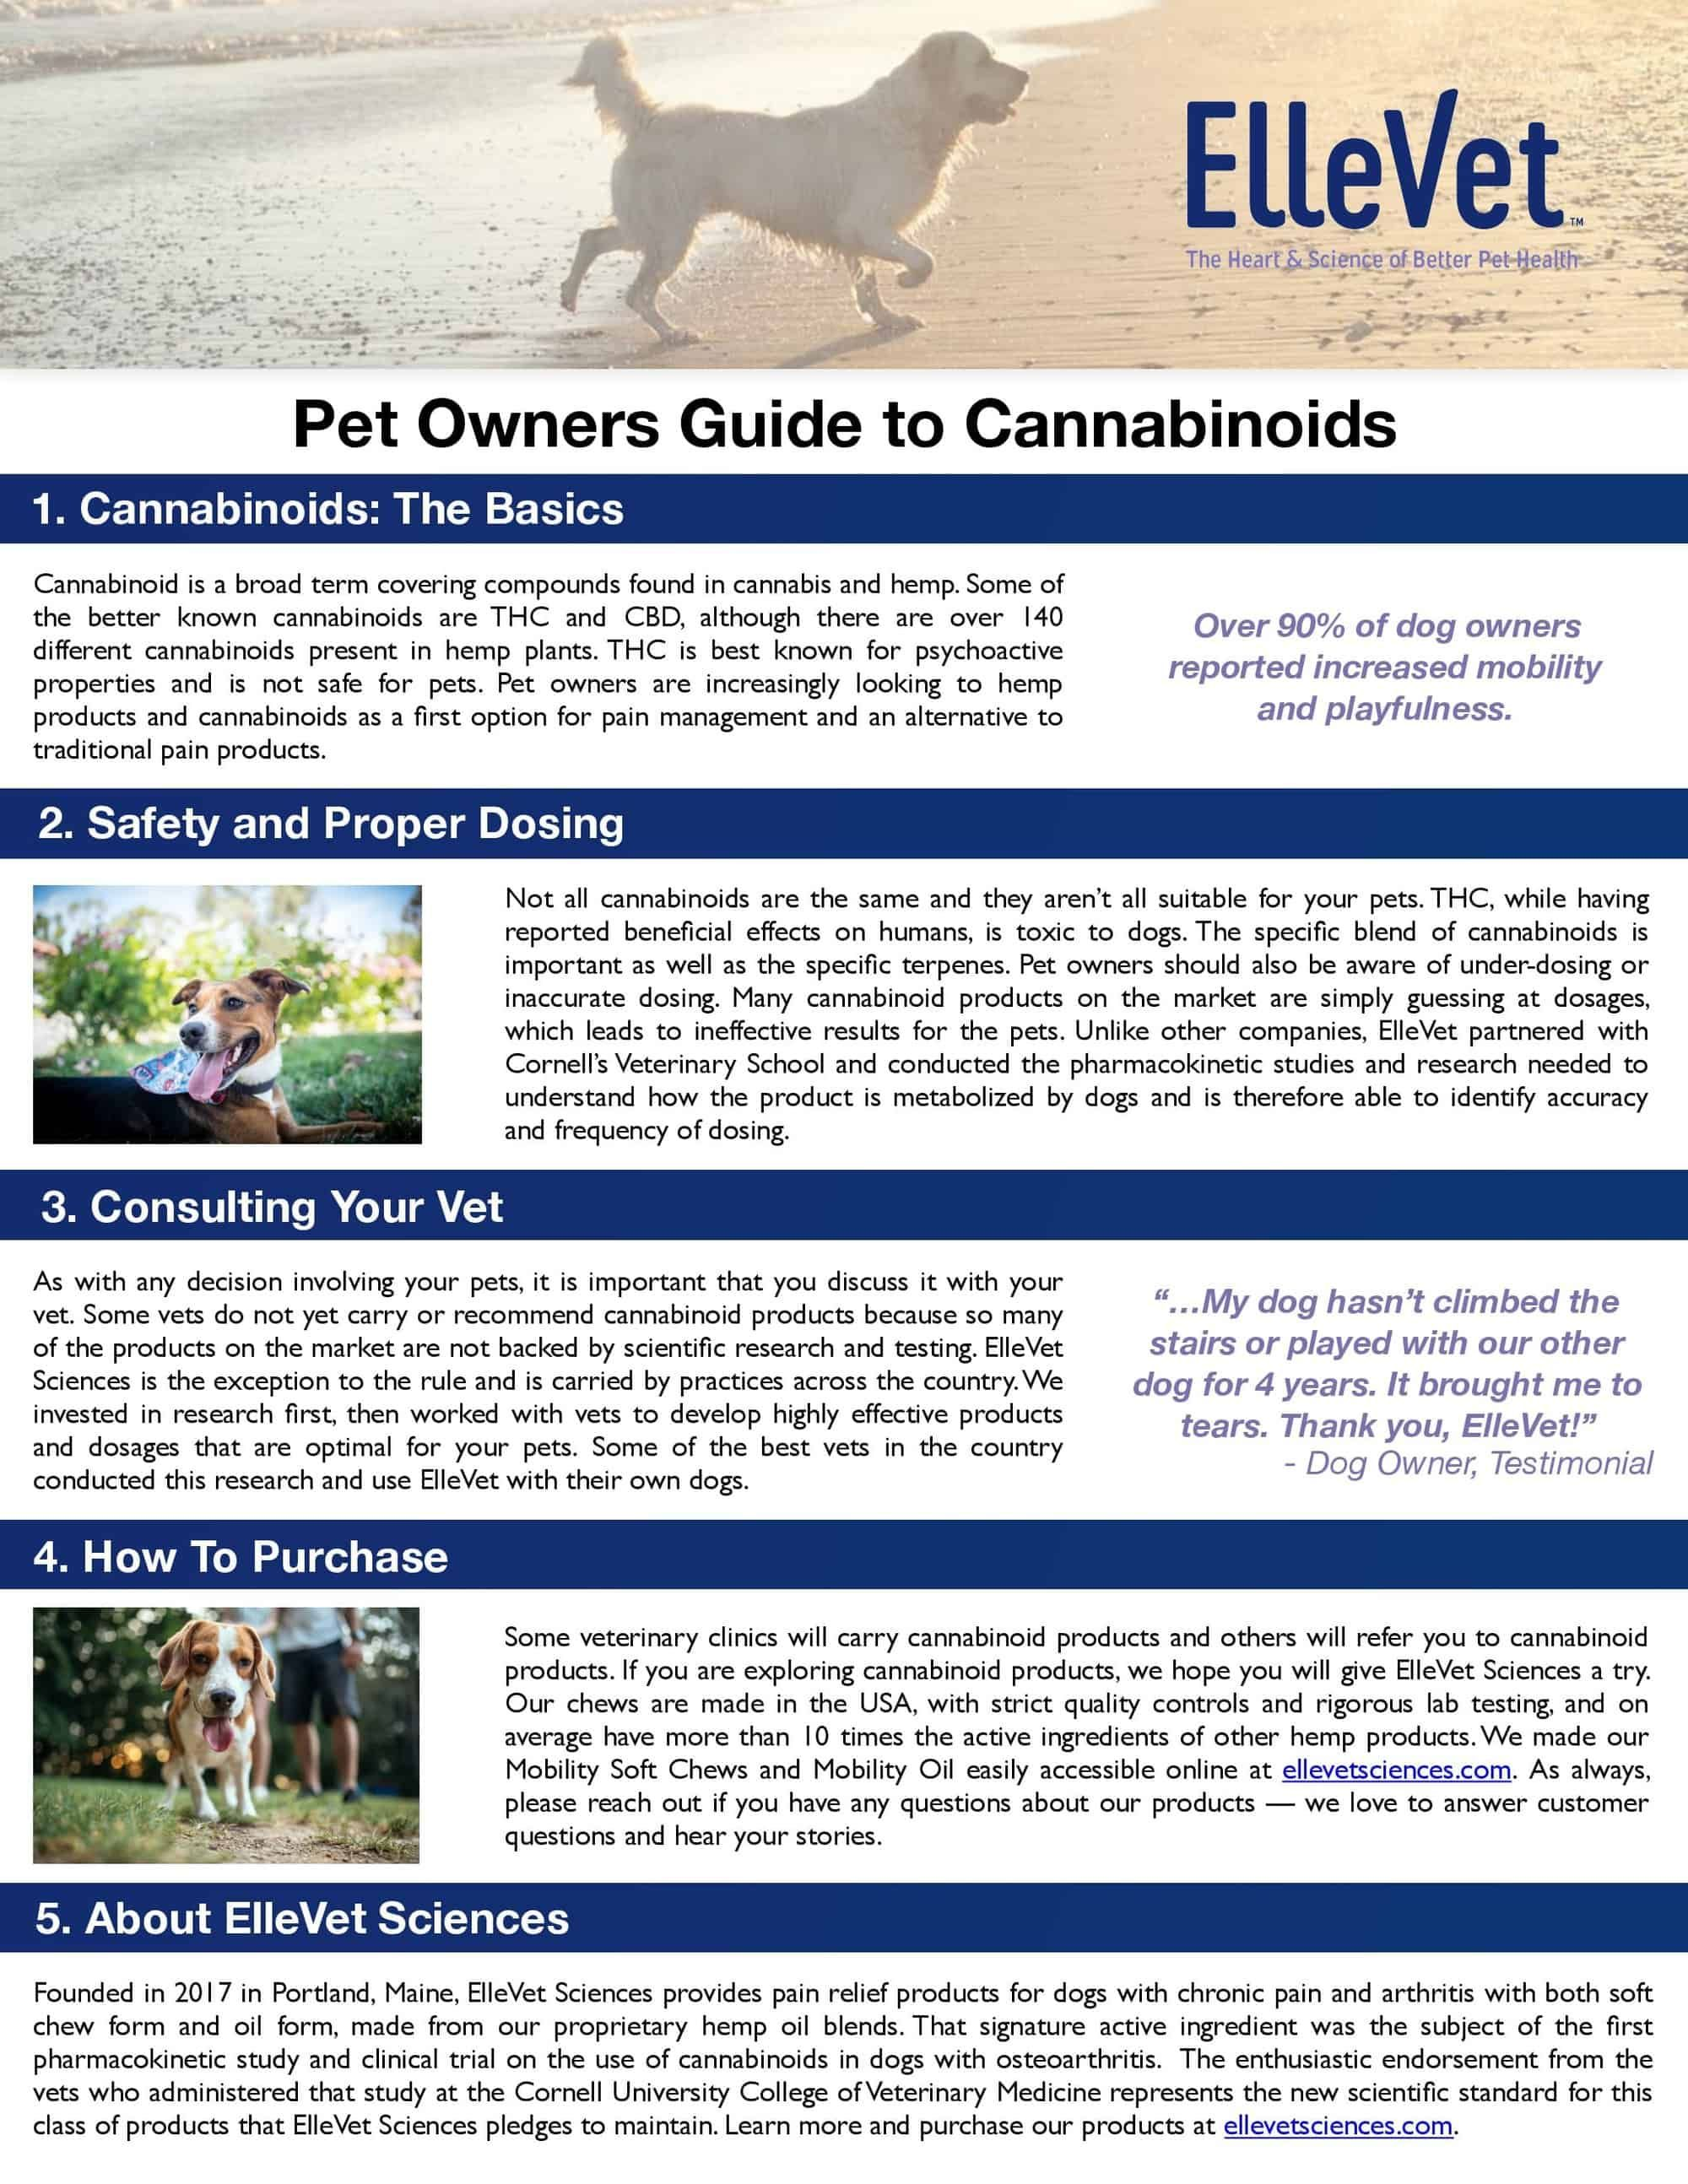 Ellevet S Guide To Cannabinoids For Pet Owners Pet Life Today Pet Life Pet Owners Cannabinoids